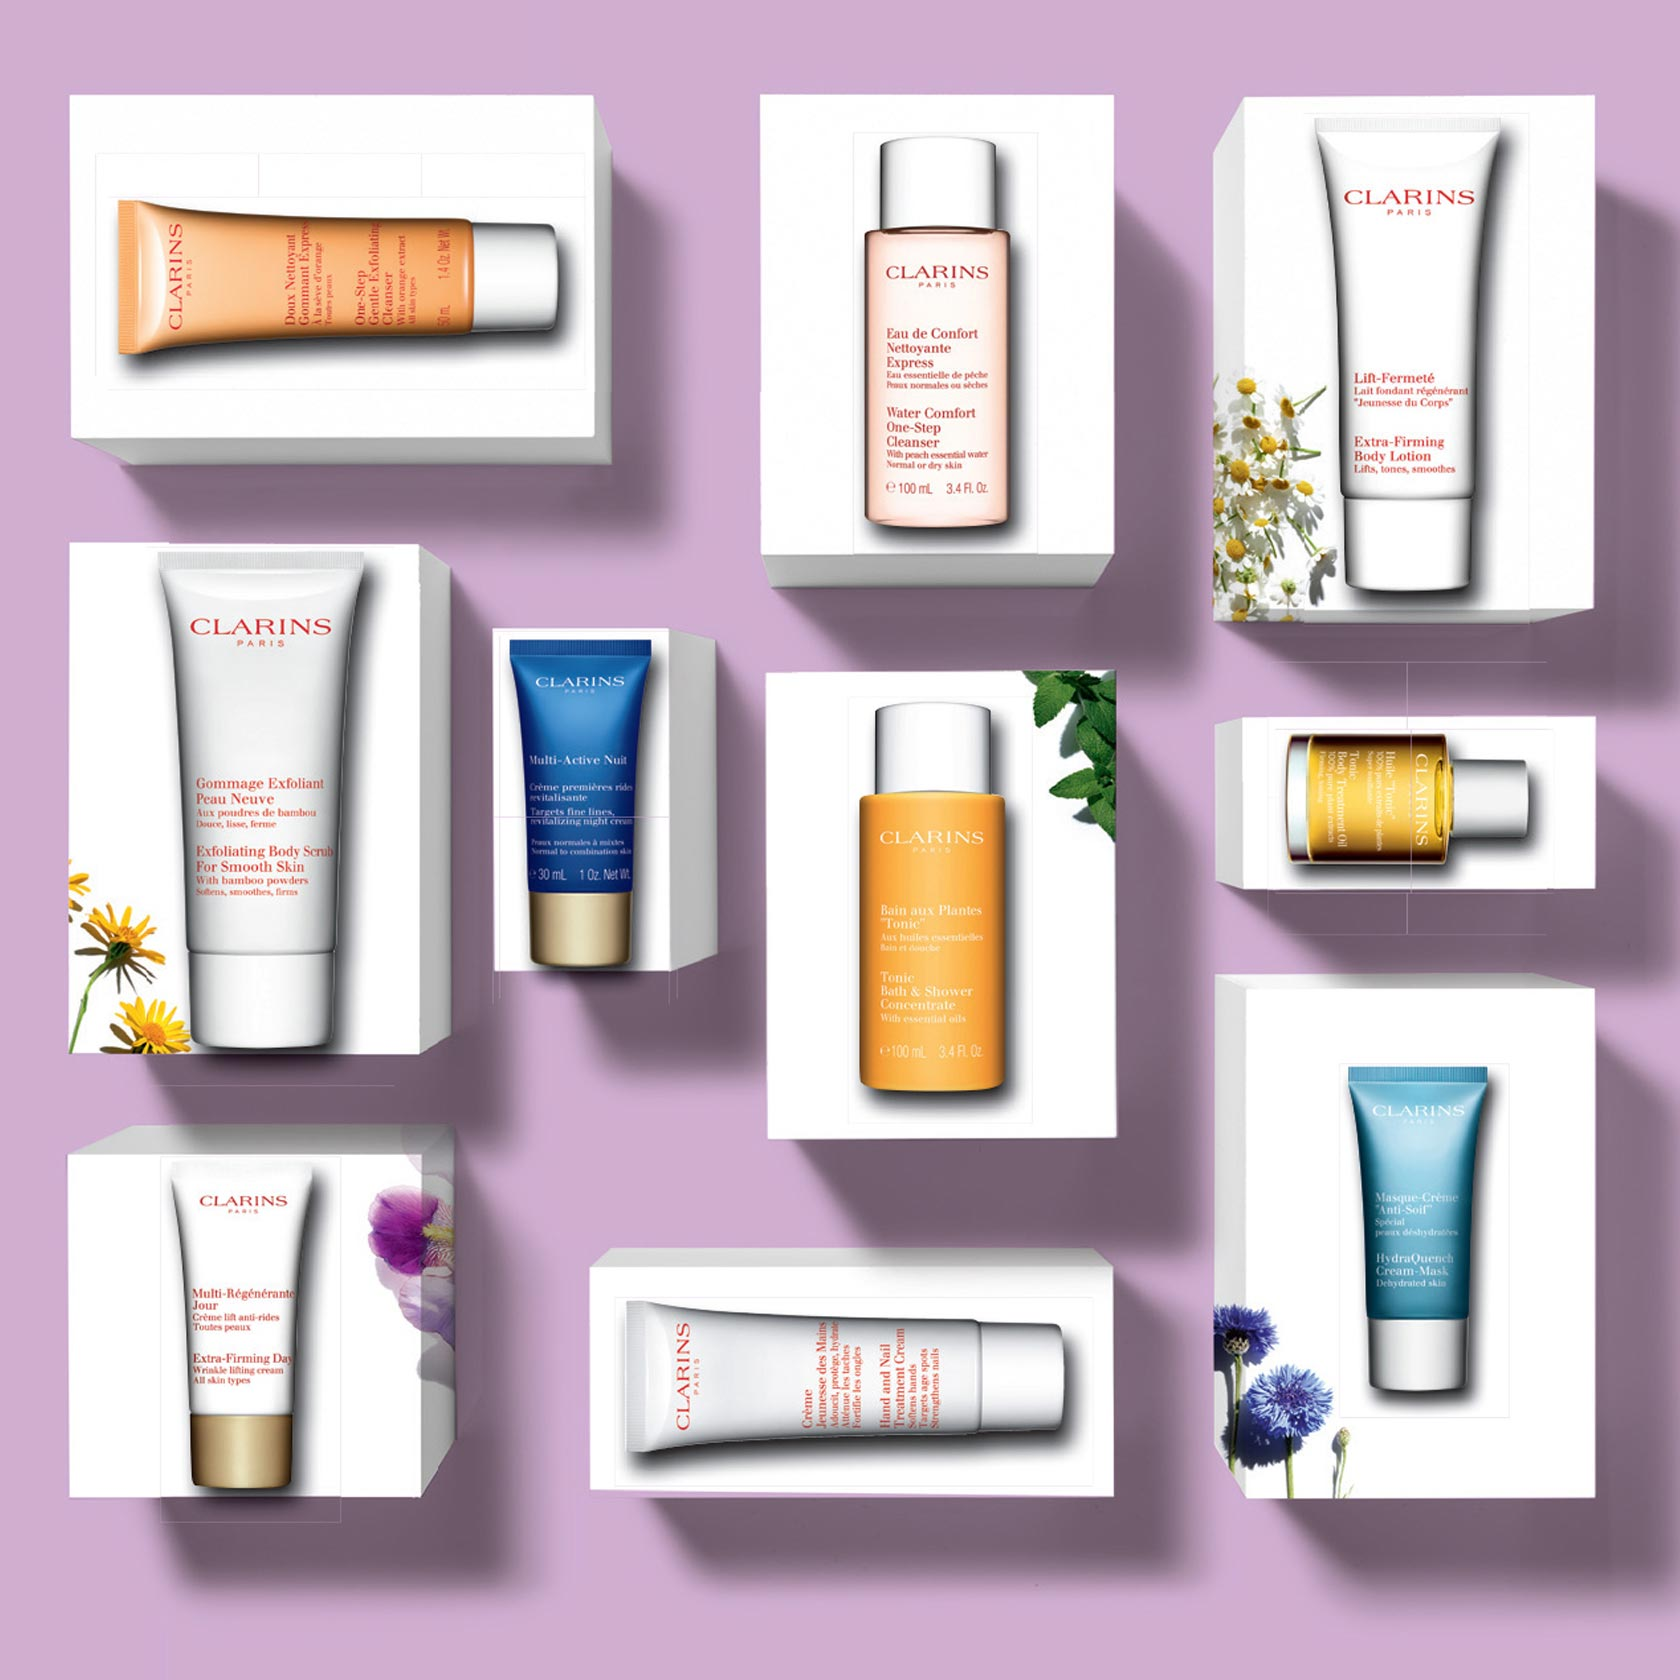 big gift with clarins image 1